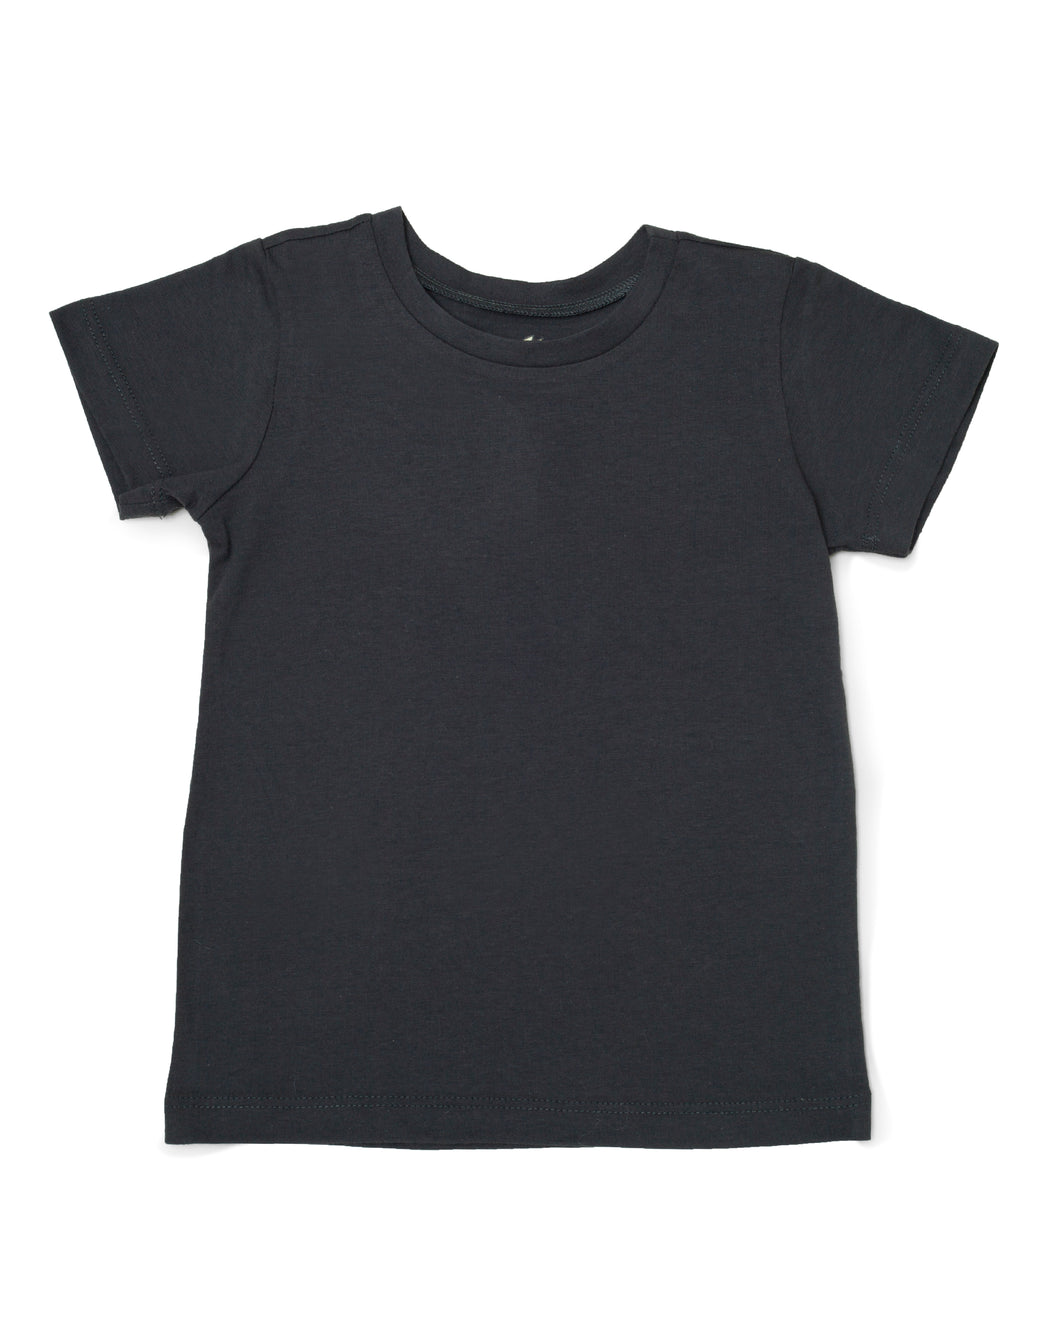 Me Do. Learn-to-Dress Grey Tee Shirt Front